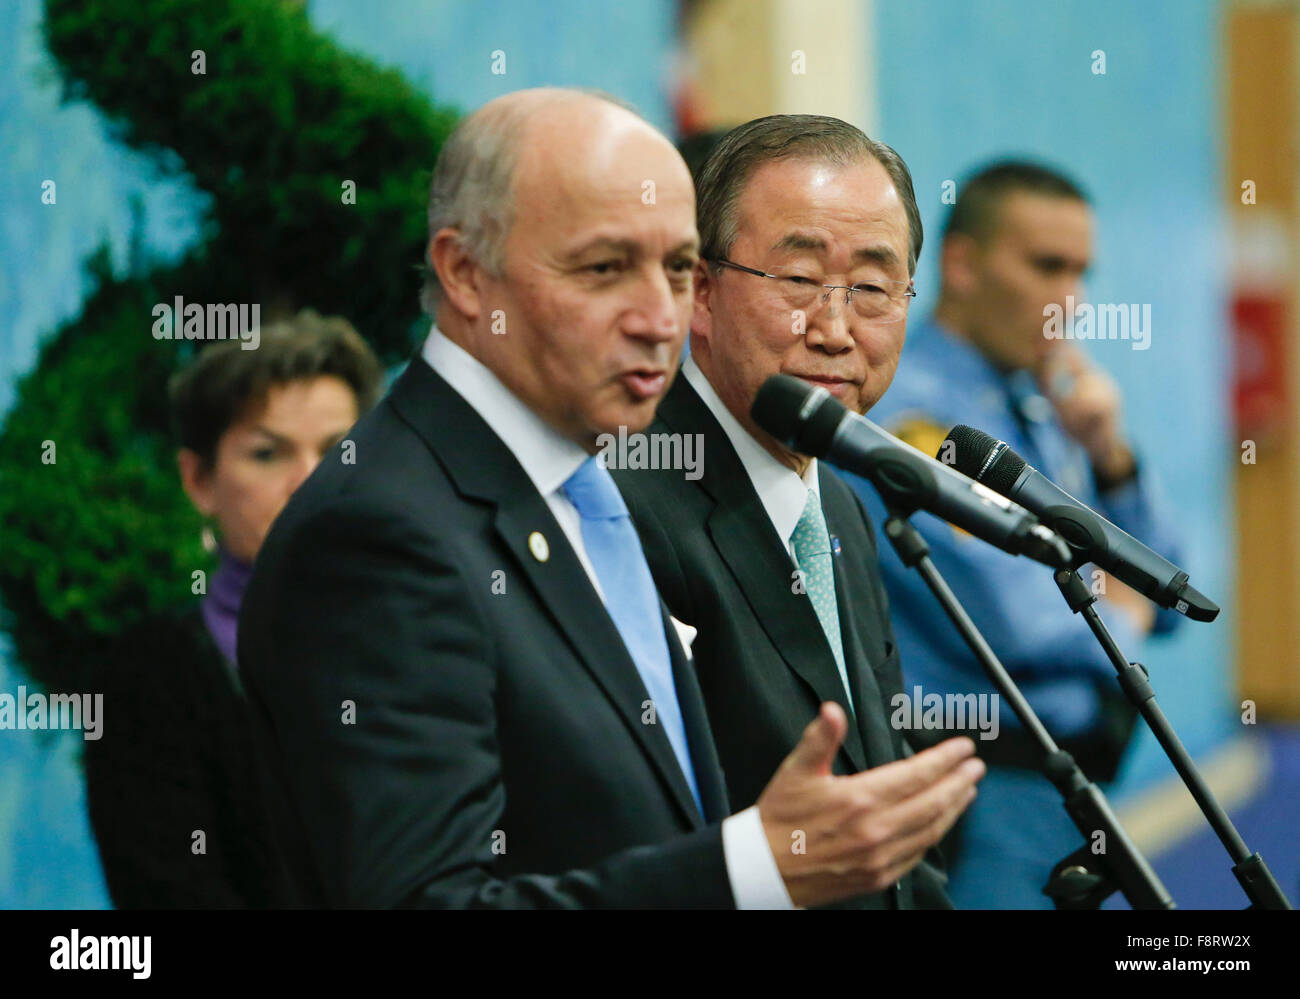 (151211) -- PARIS, Dec. 11, 2015 (Xinhua) -- French Foreign Minister and President of Paris Climate Conference Laurent - Stock Image